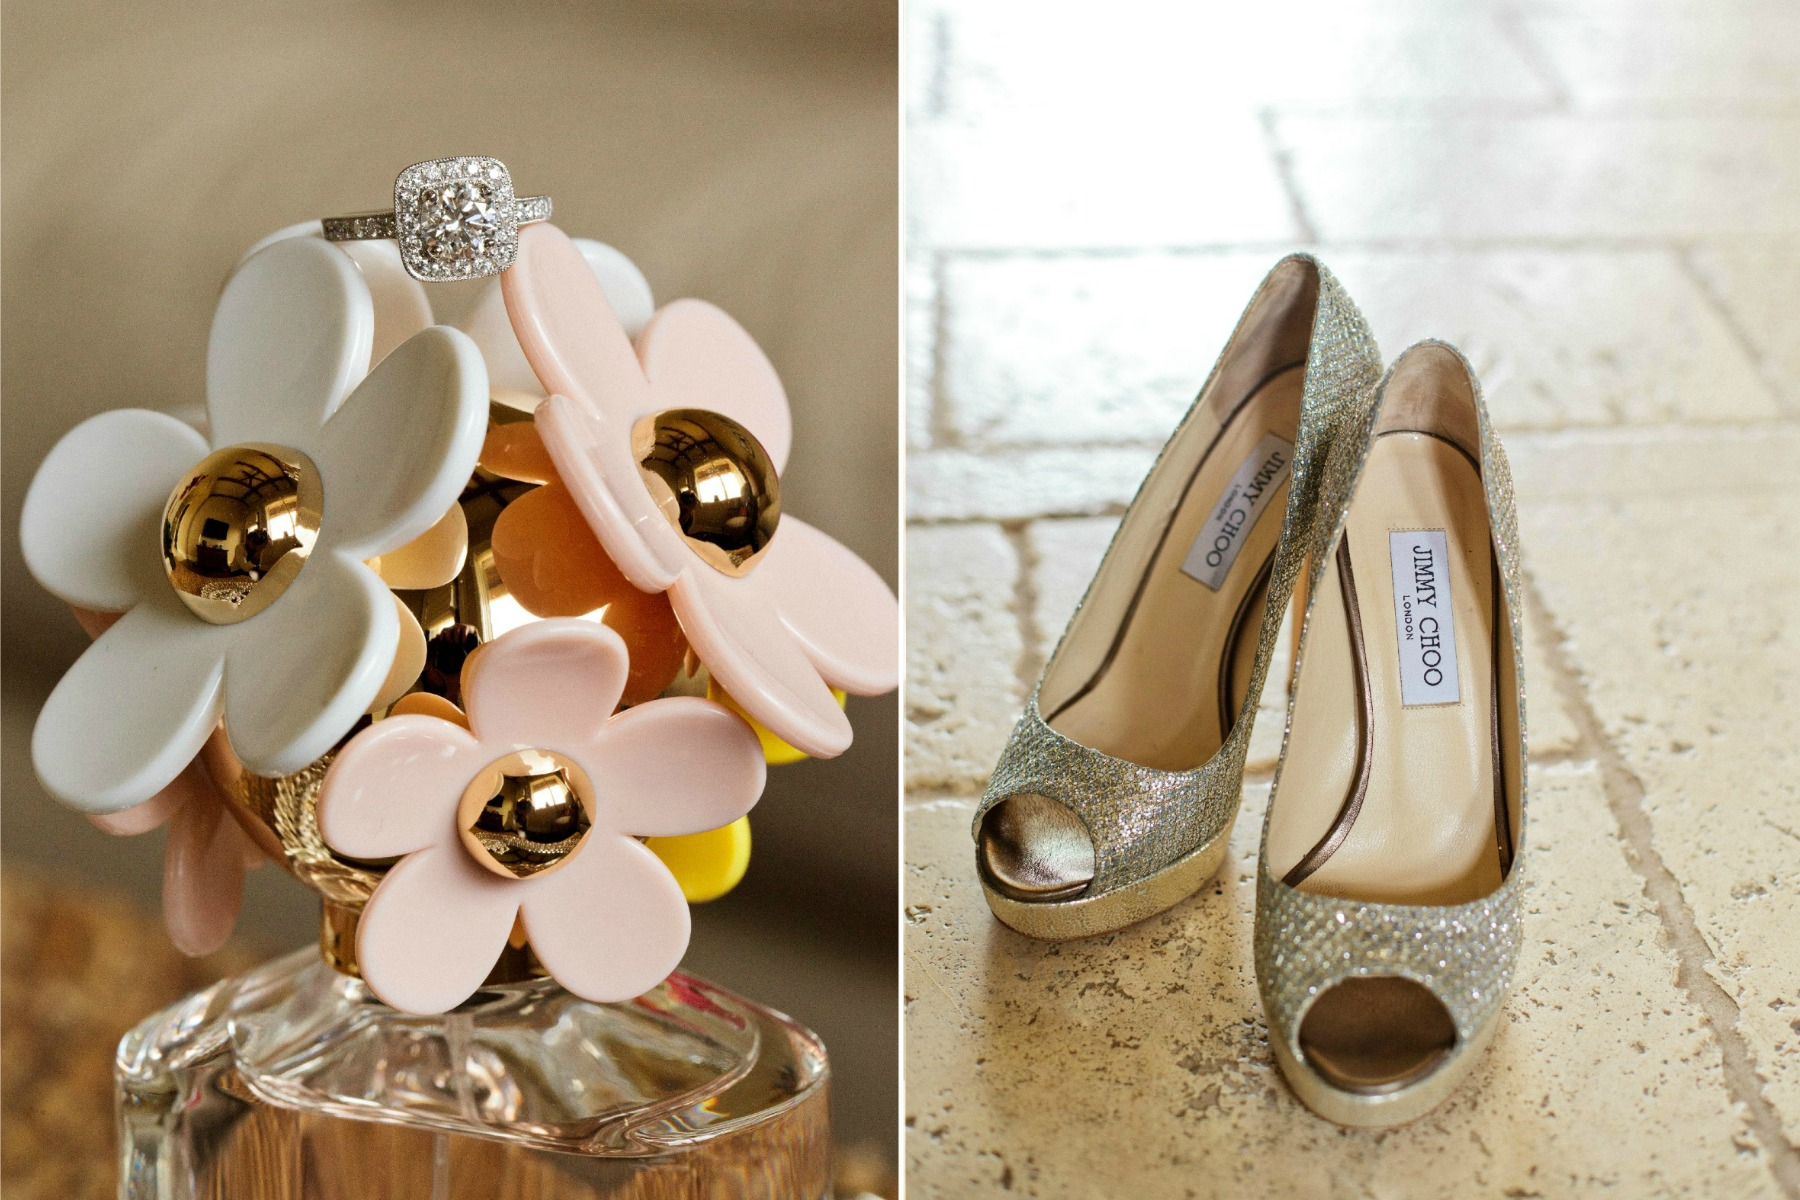 the bride's engagement ring on a daisy perfume bottle and jimmy choo shoes